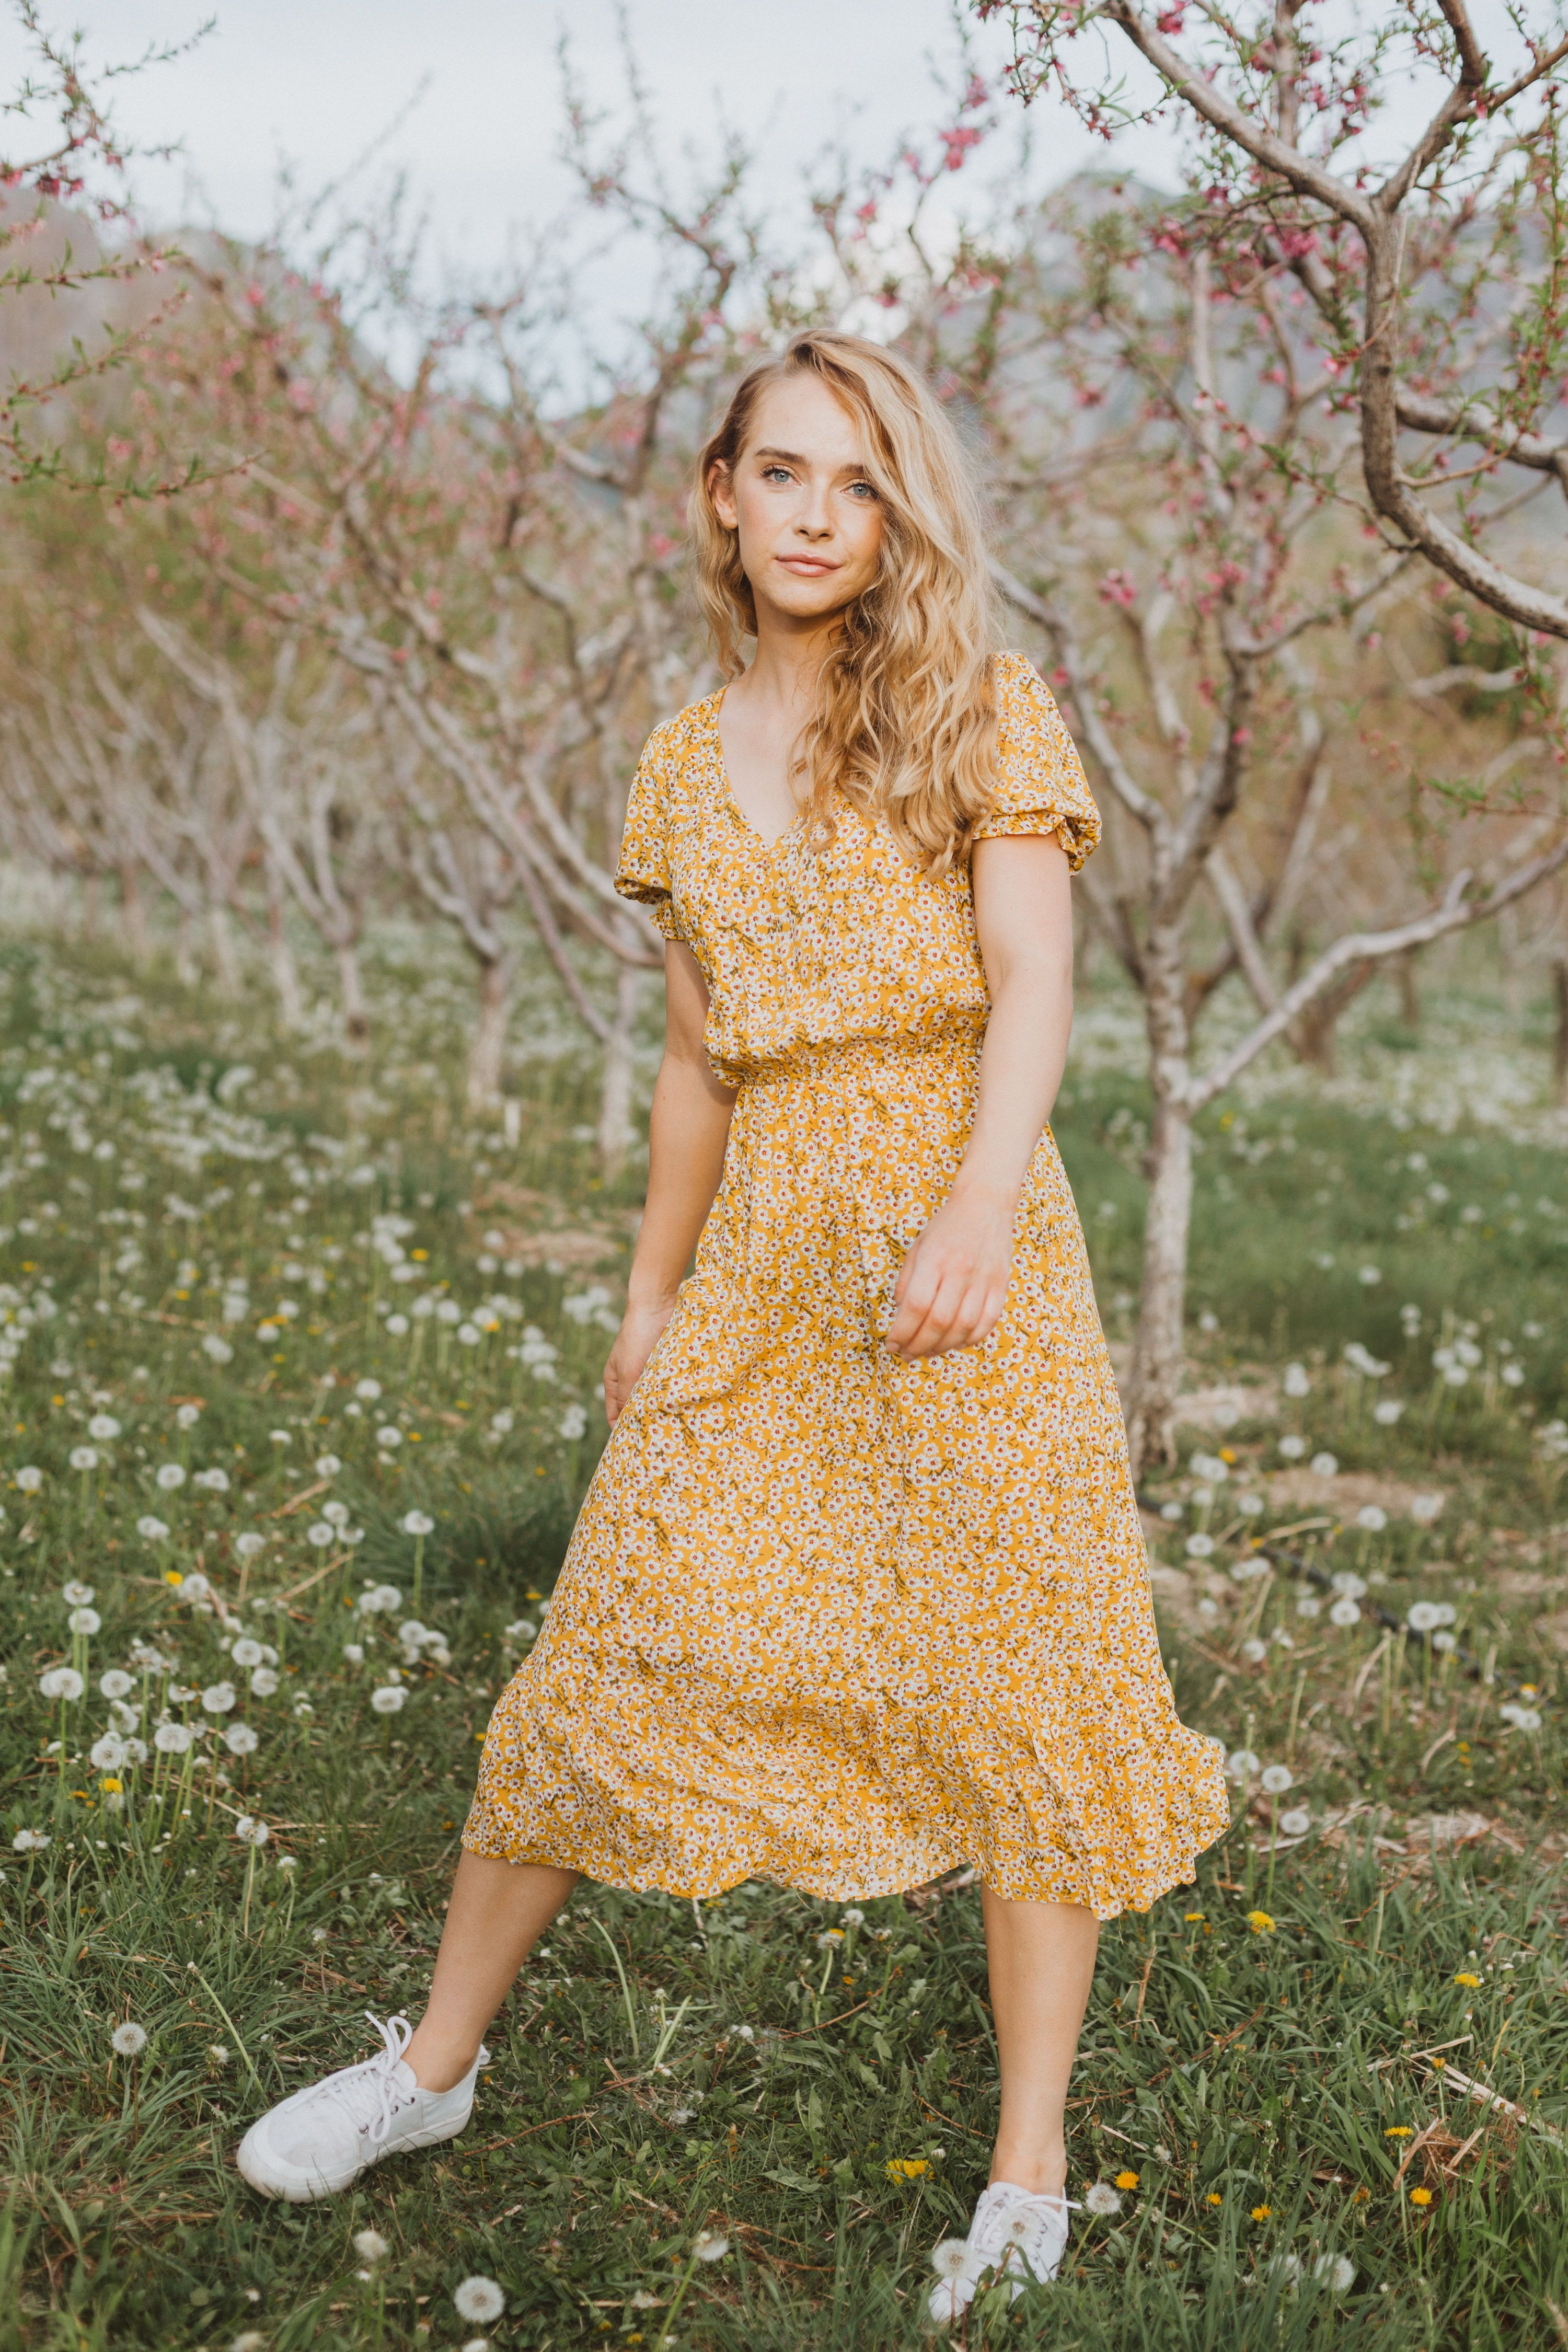 The Cameron Floral Midi Dress In Dandelion Long Summer Dress Outfits Summer Dress Outfits Summer Fashion Outfits [ 4500 x 3000 Pixel ]